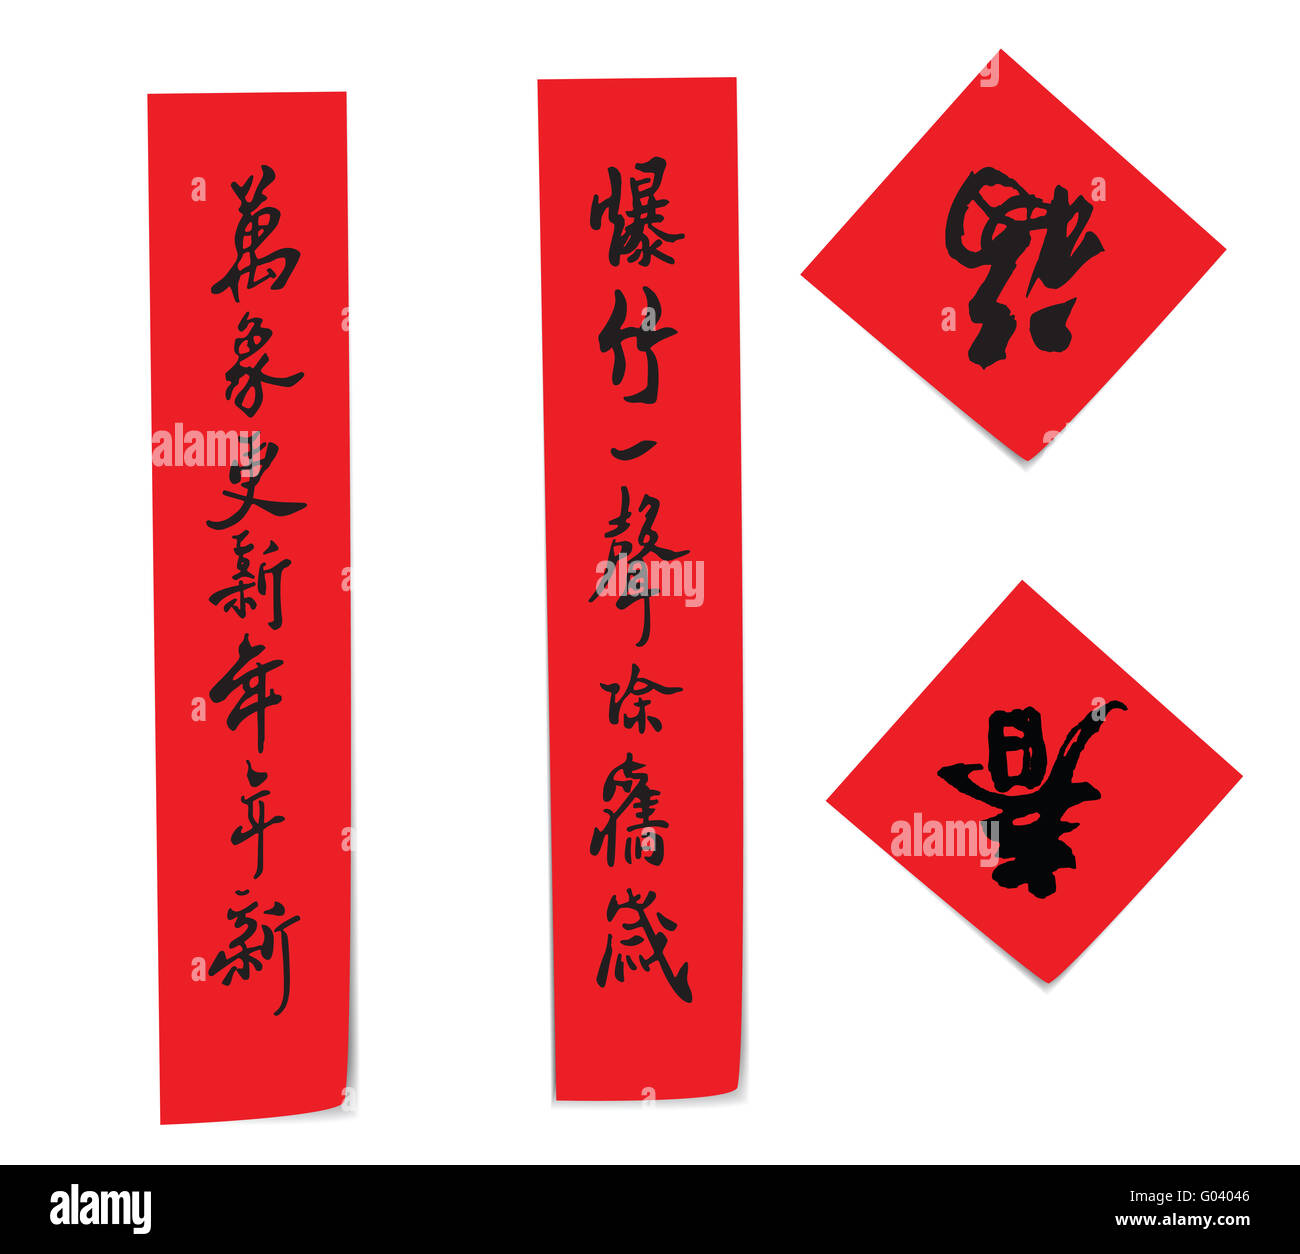 Chinese New Year Greetings Symbols Stock Photos Chinese New Year